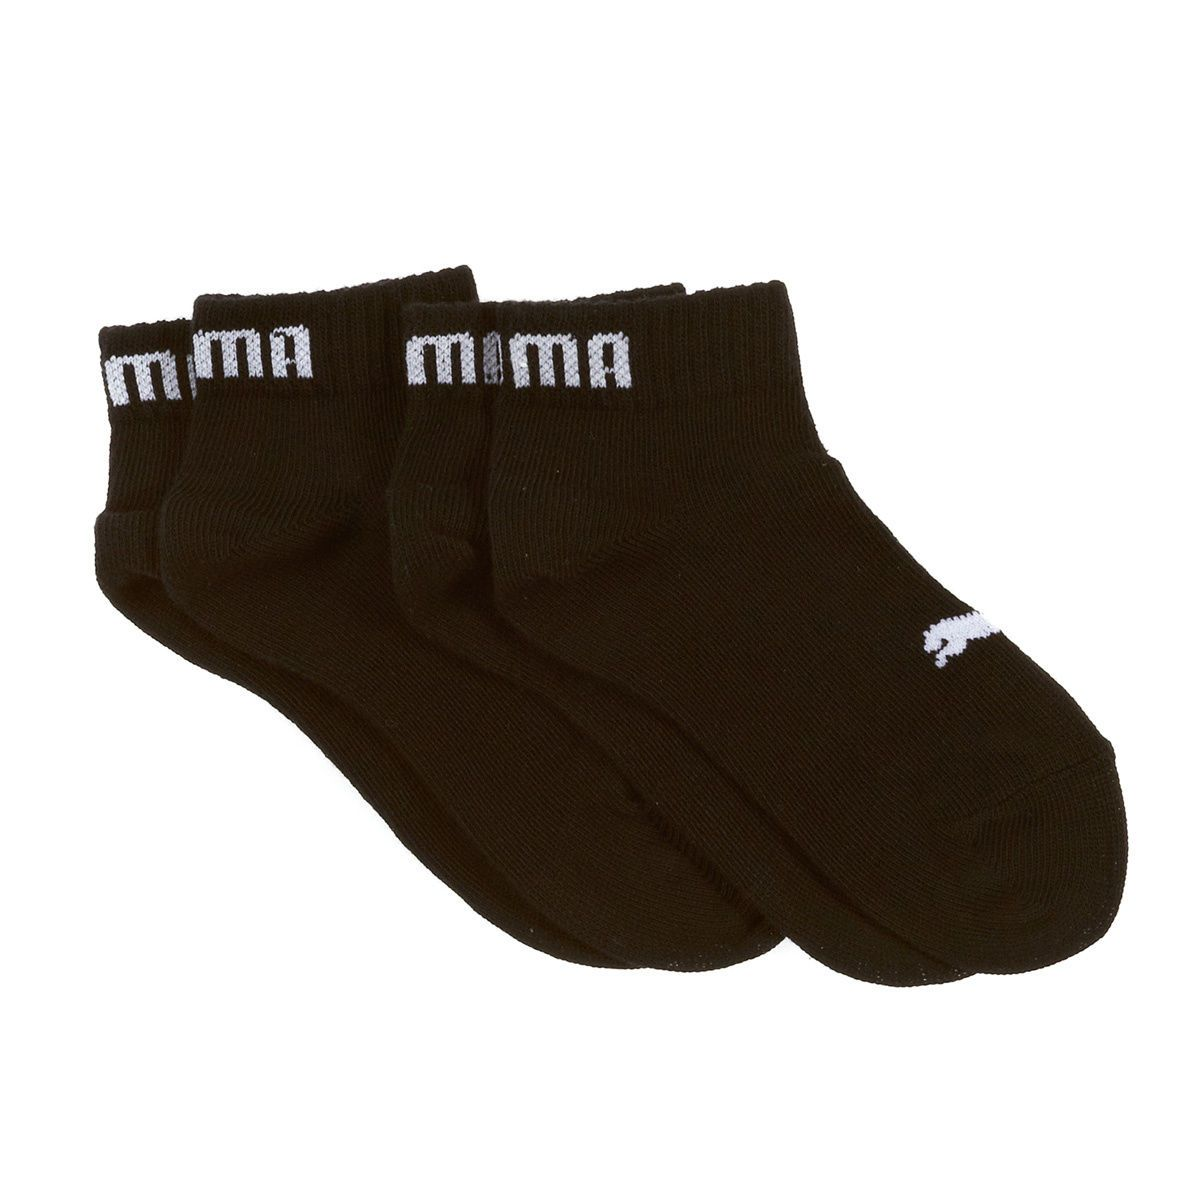 770acfe80 Buy puma socks boys > OFF63% Discounts